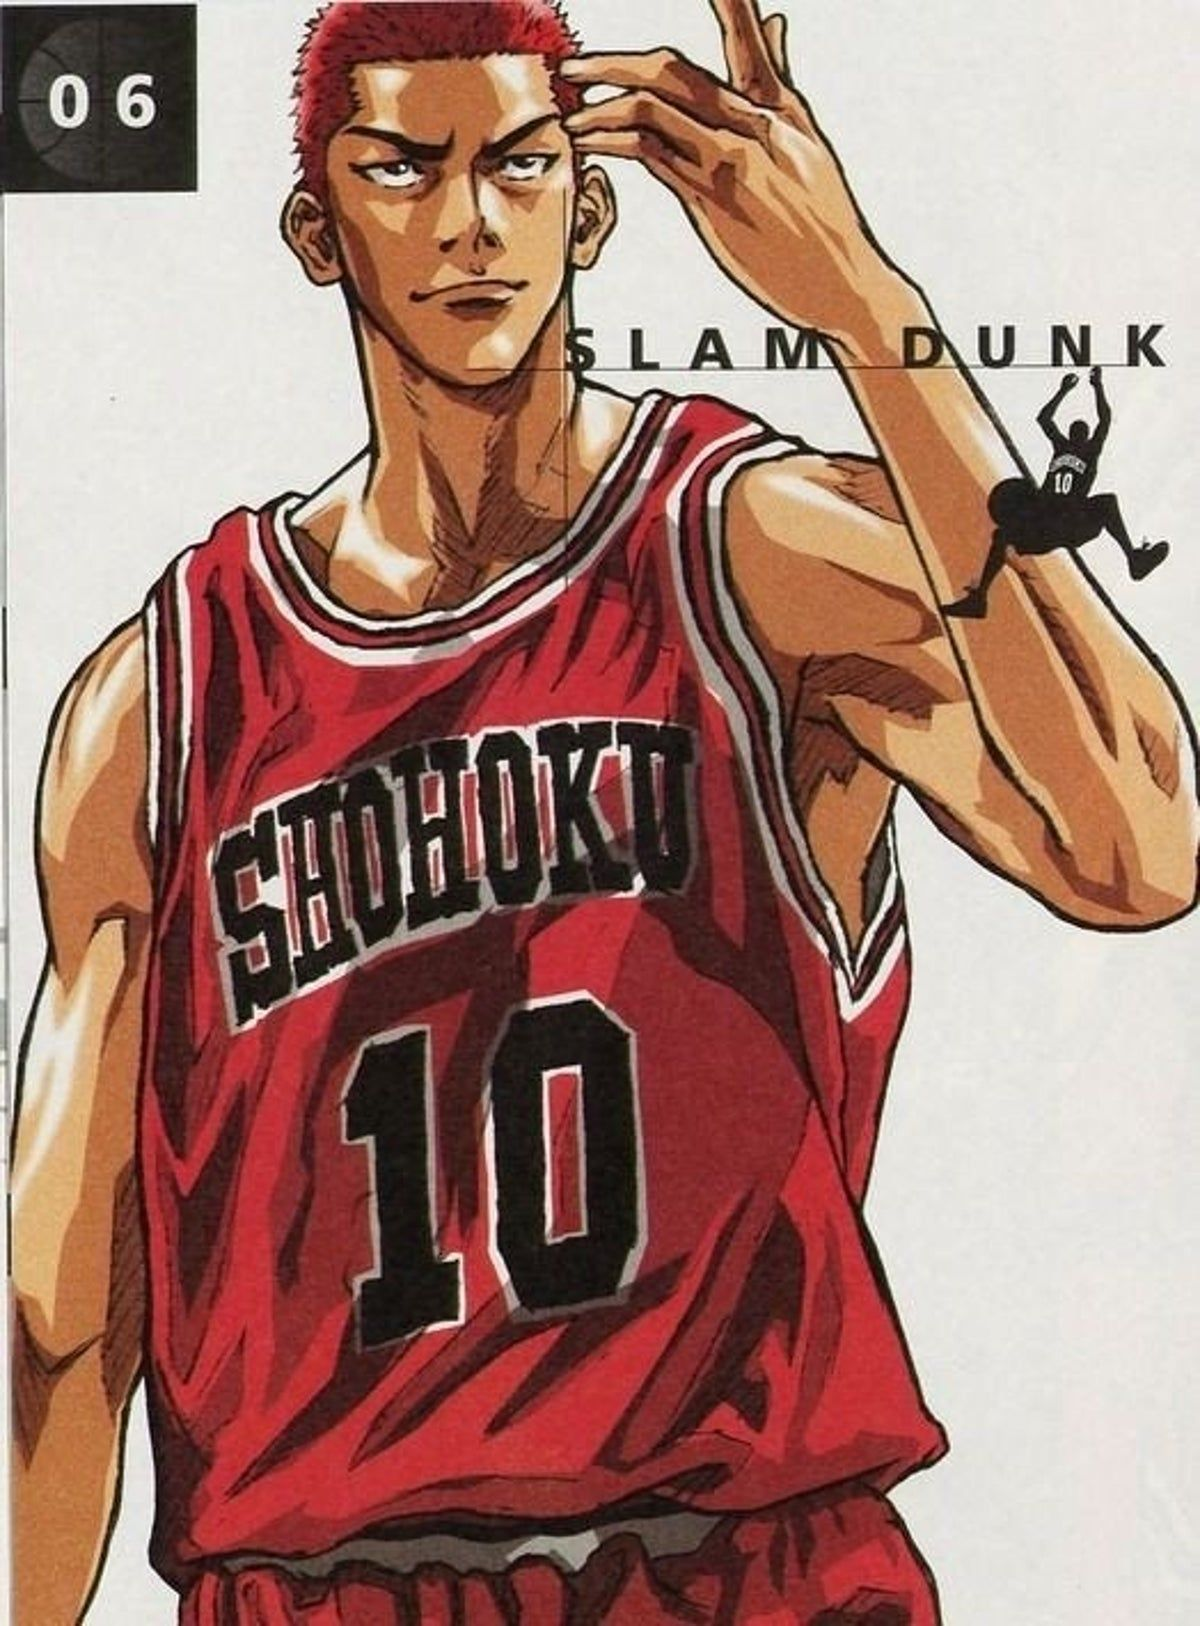 Slamdunk Sakuragi Basketball Jersey In 2021 Slam Dunk Anime Slam Dunk Basketball Jersey